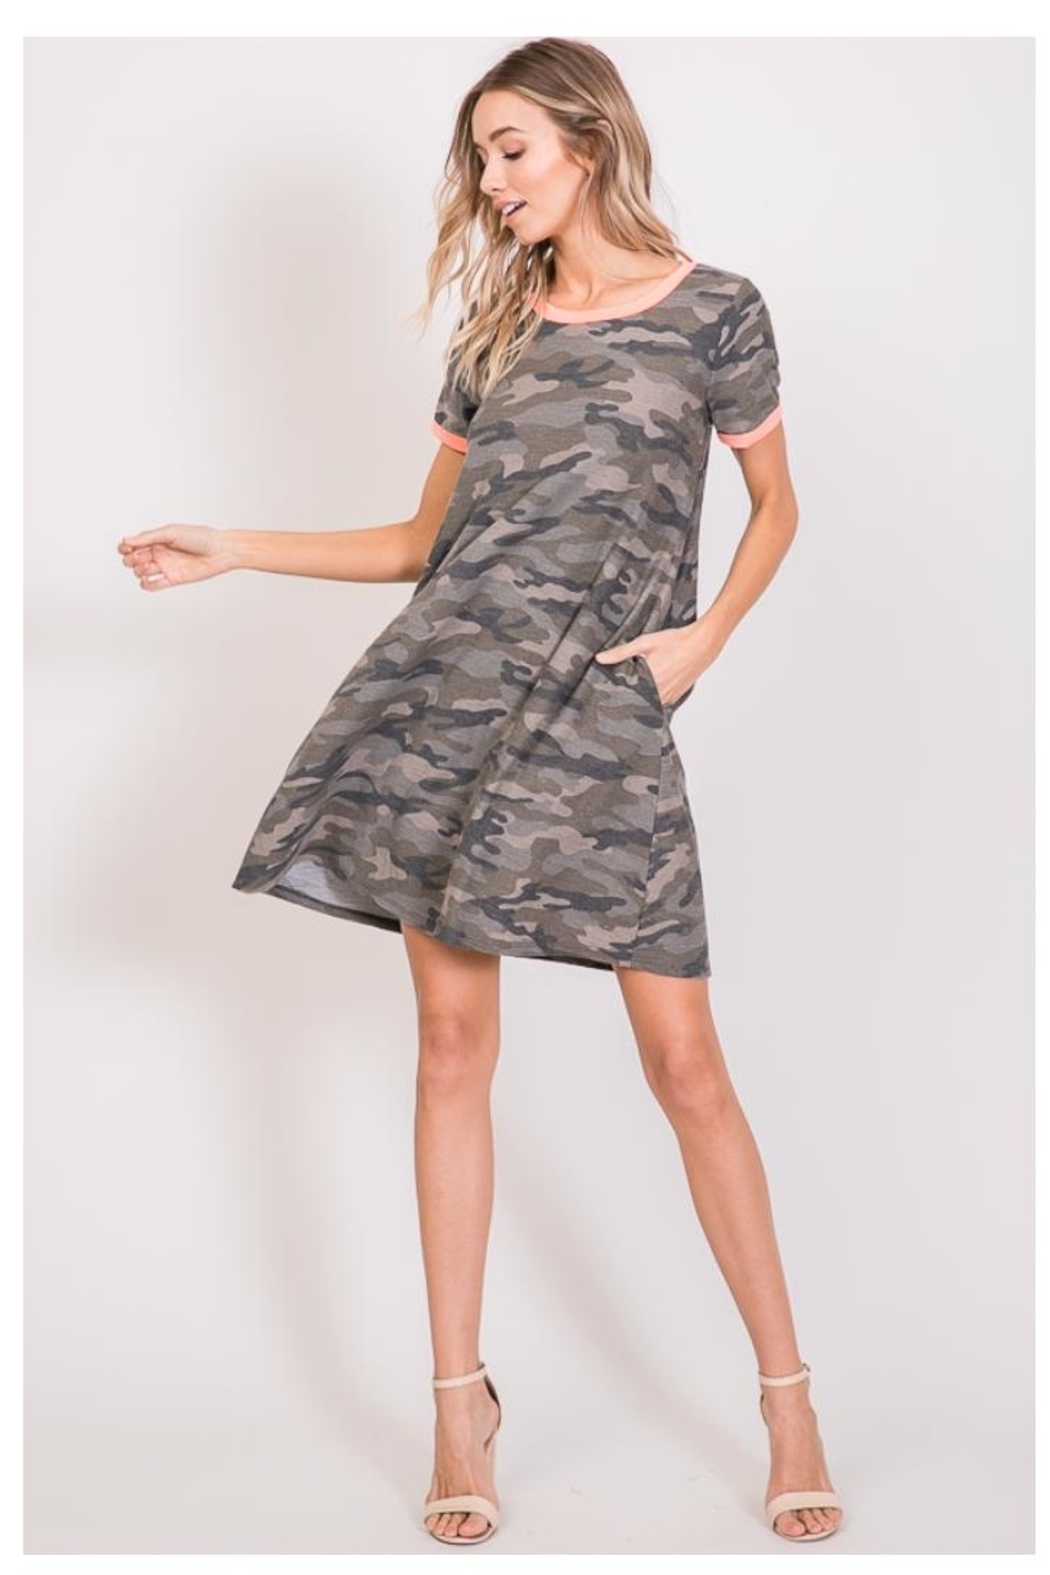 7th Ray Camo T-Shirt Dress - Side Cropped Image